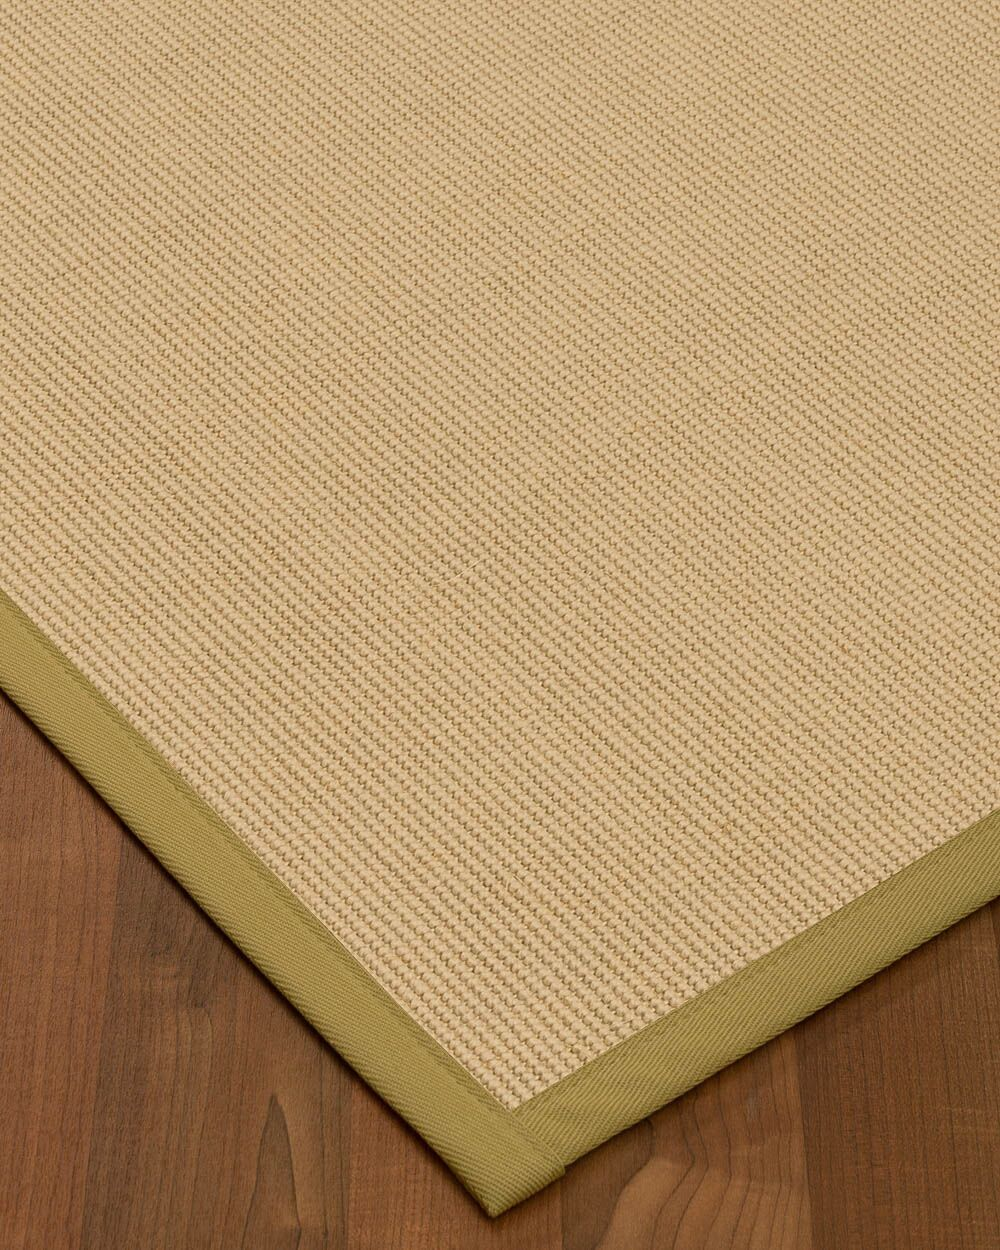 Vannatta Border Hand-Woven Wool Beige Area Rug Rug Size: Rectangle 8' x 10', Rug Pad Included: Yes